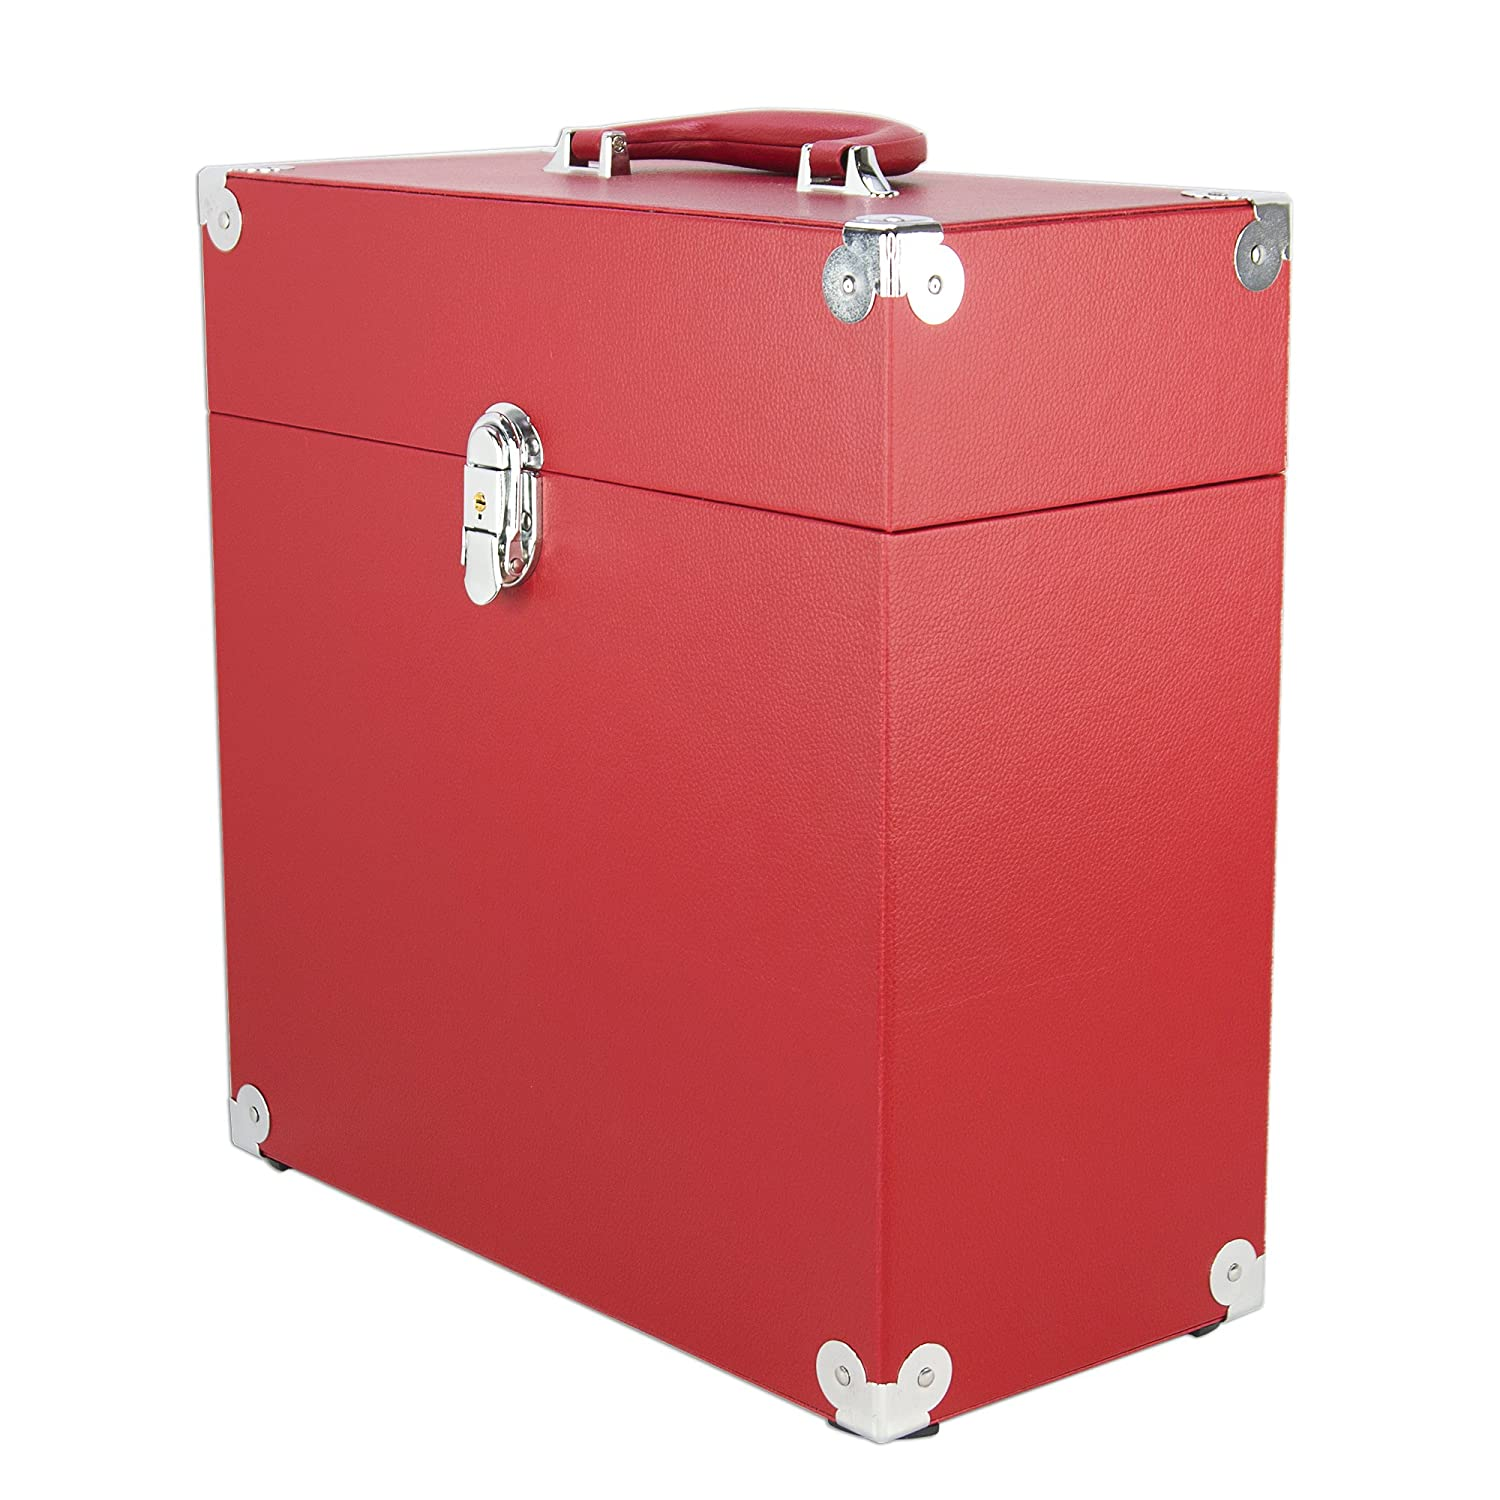 JACK & CABLE (HMV0591) Vinyl Record Case for 12' & LPs Records - Red with Silver Hardware OTL